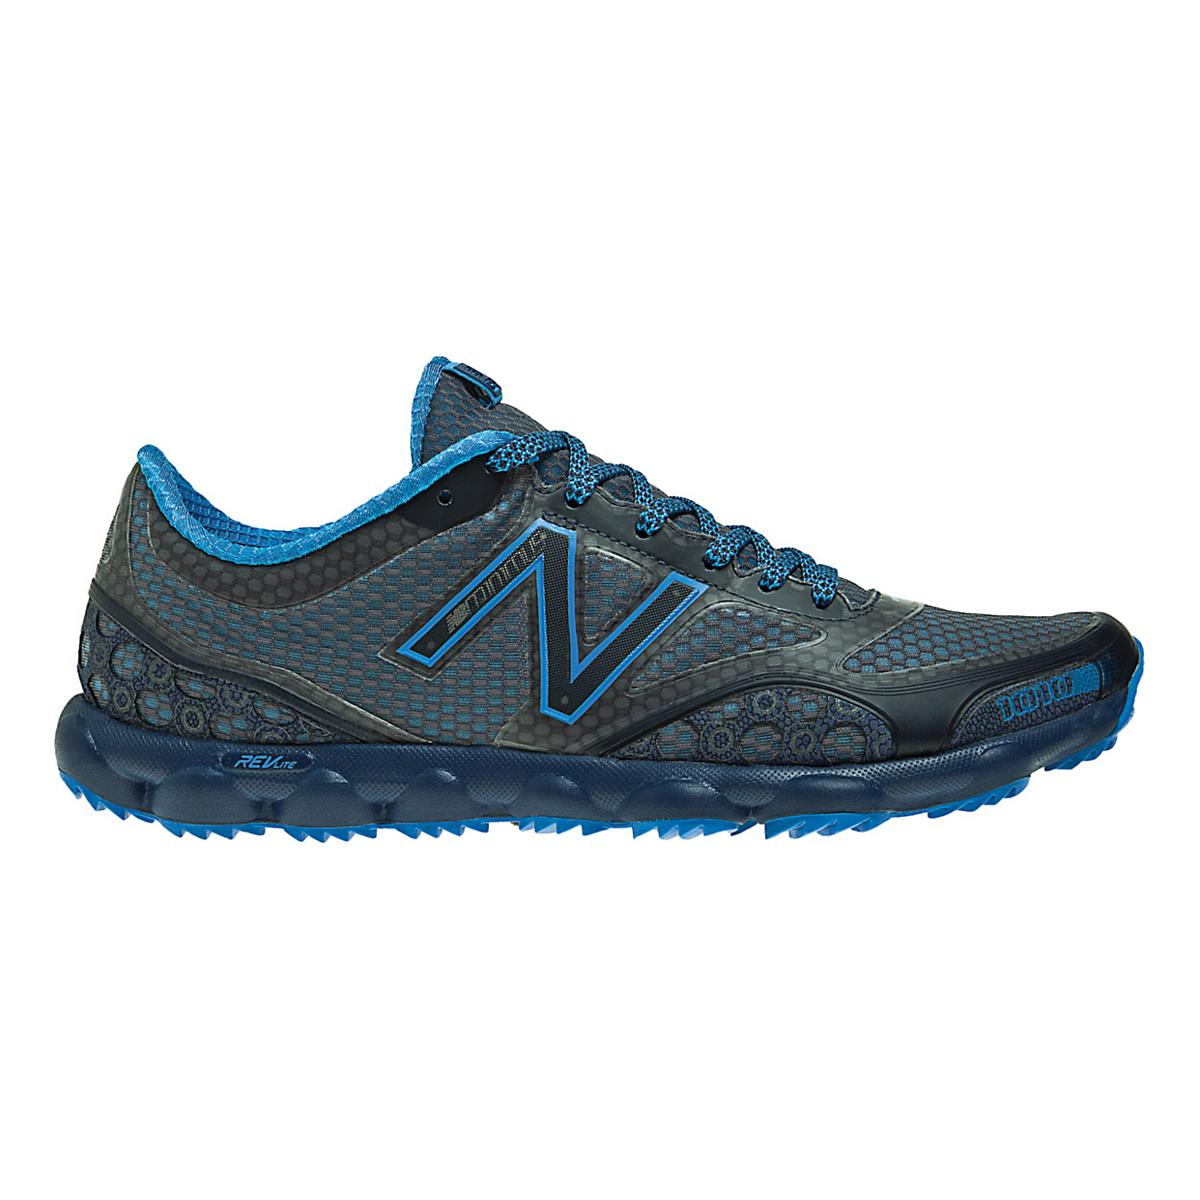 Mens New Balance Minimus 1010 Trail Running Shoe at Road Runner Sports 725b34fc93f